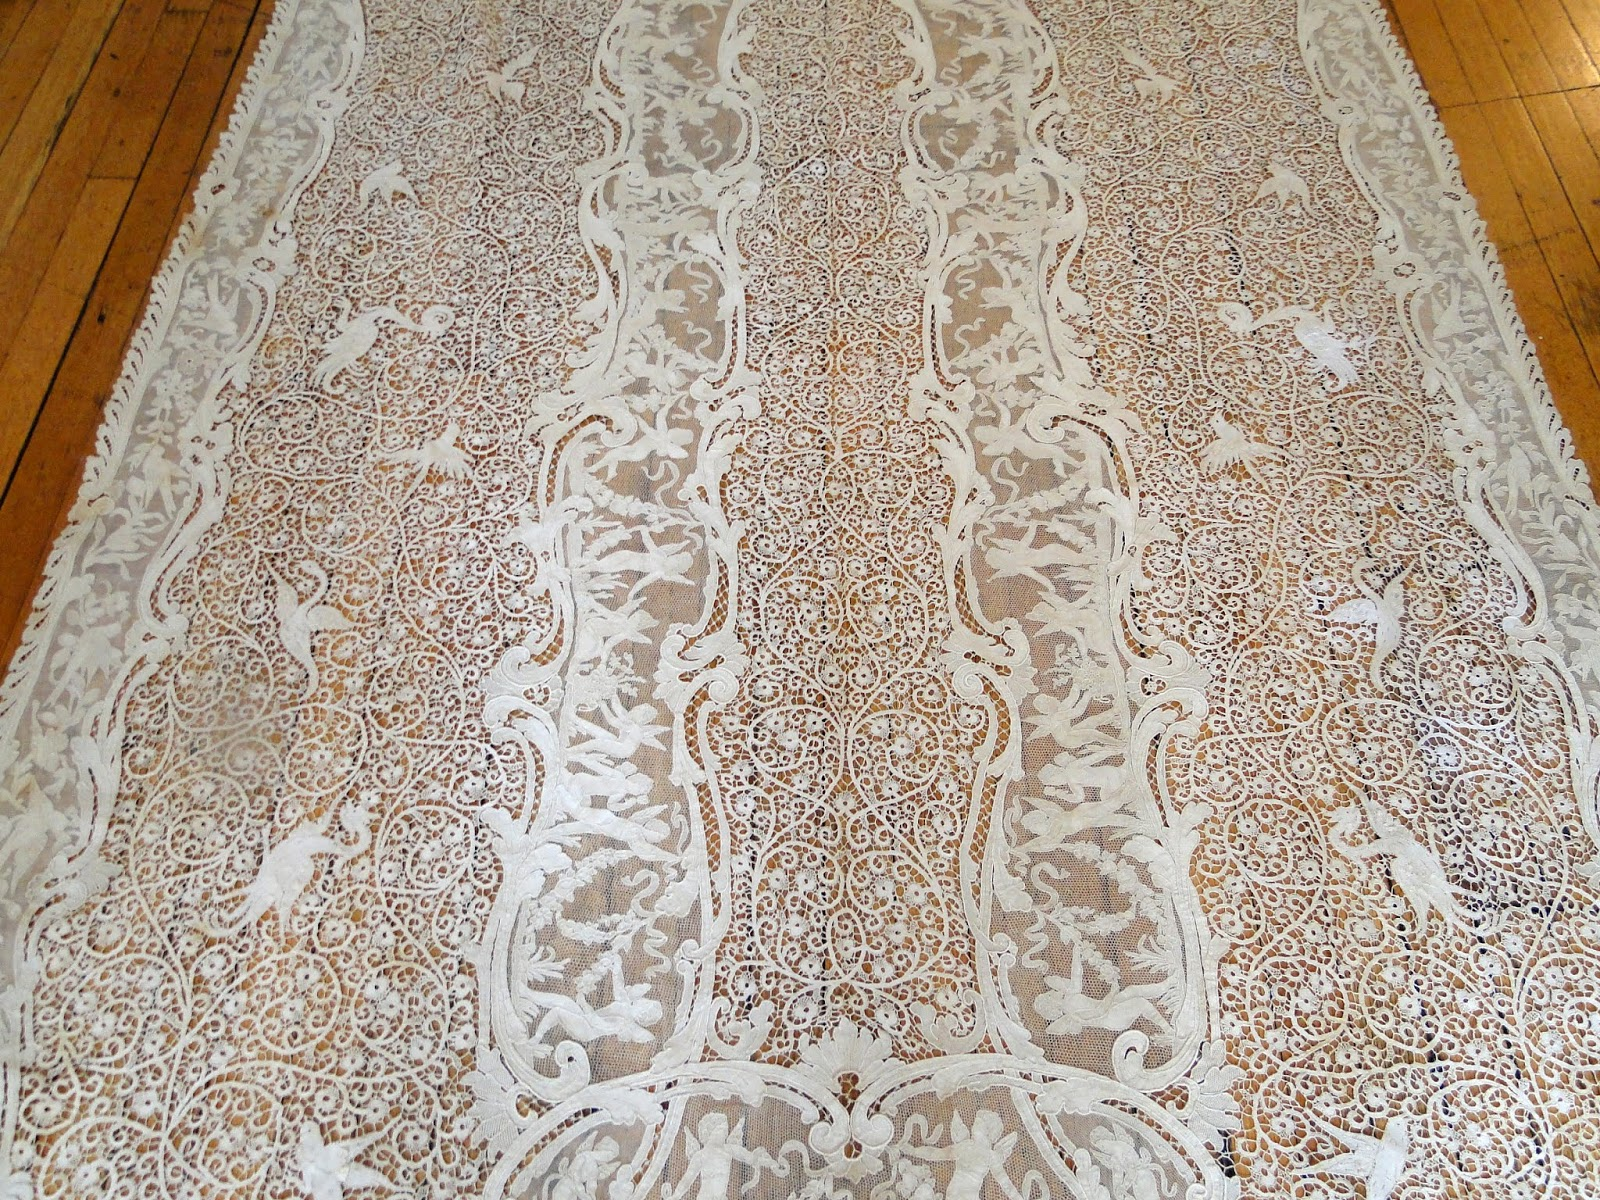 A Superior Italian Lace Banquet Tablecloth That Might Have Come From The  J.P.Morgan Estate.Circa 1900, One Rarely Comes Across This Level Of ...